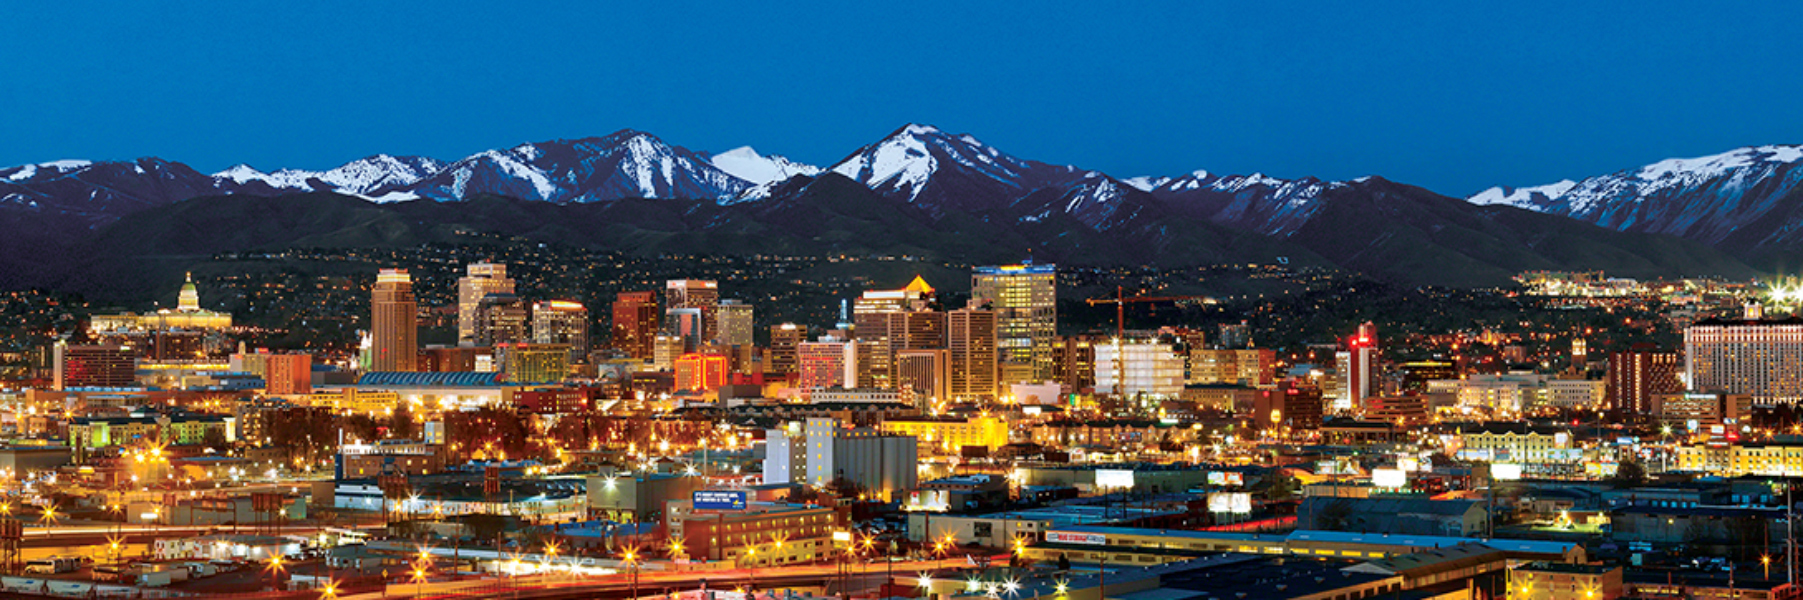 Salt Lake City Skyline / Cityscape Jigsaw Puzzle